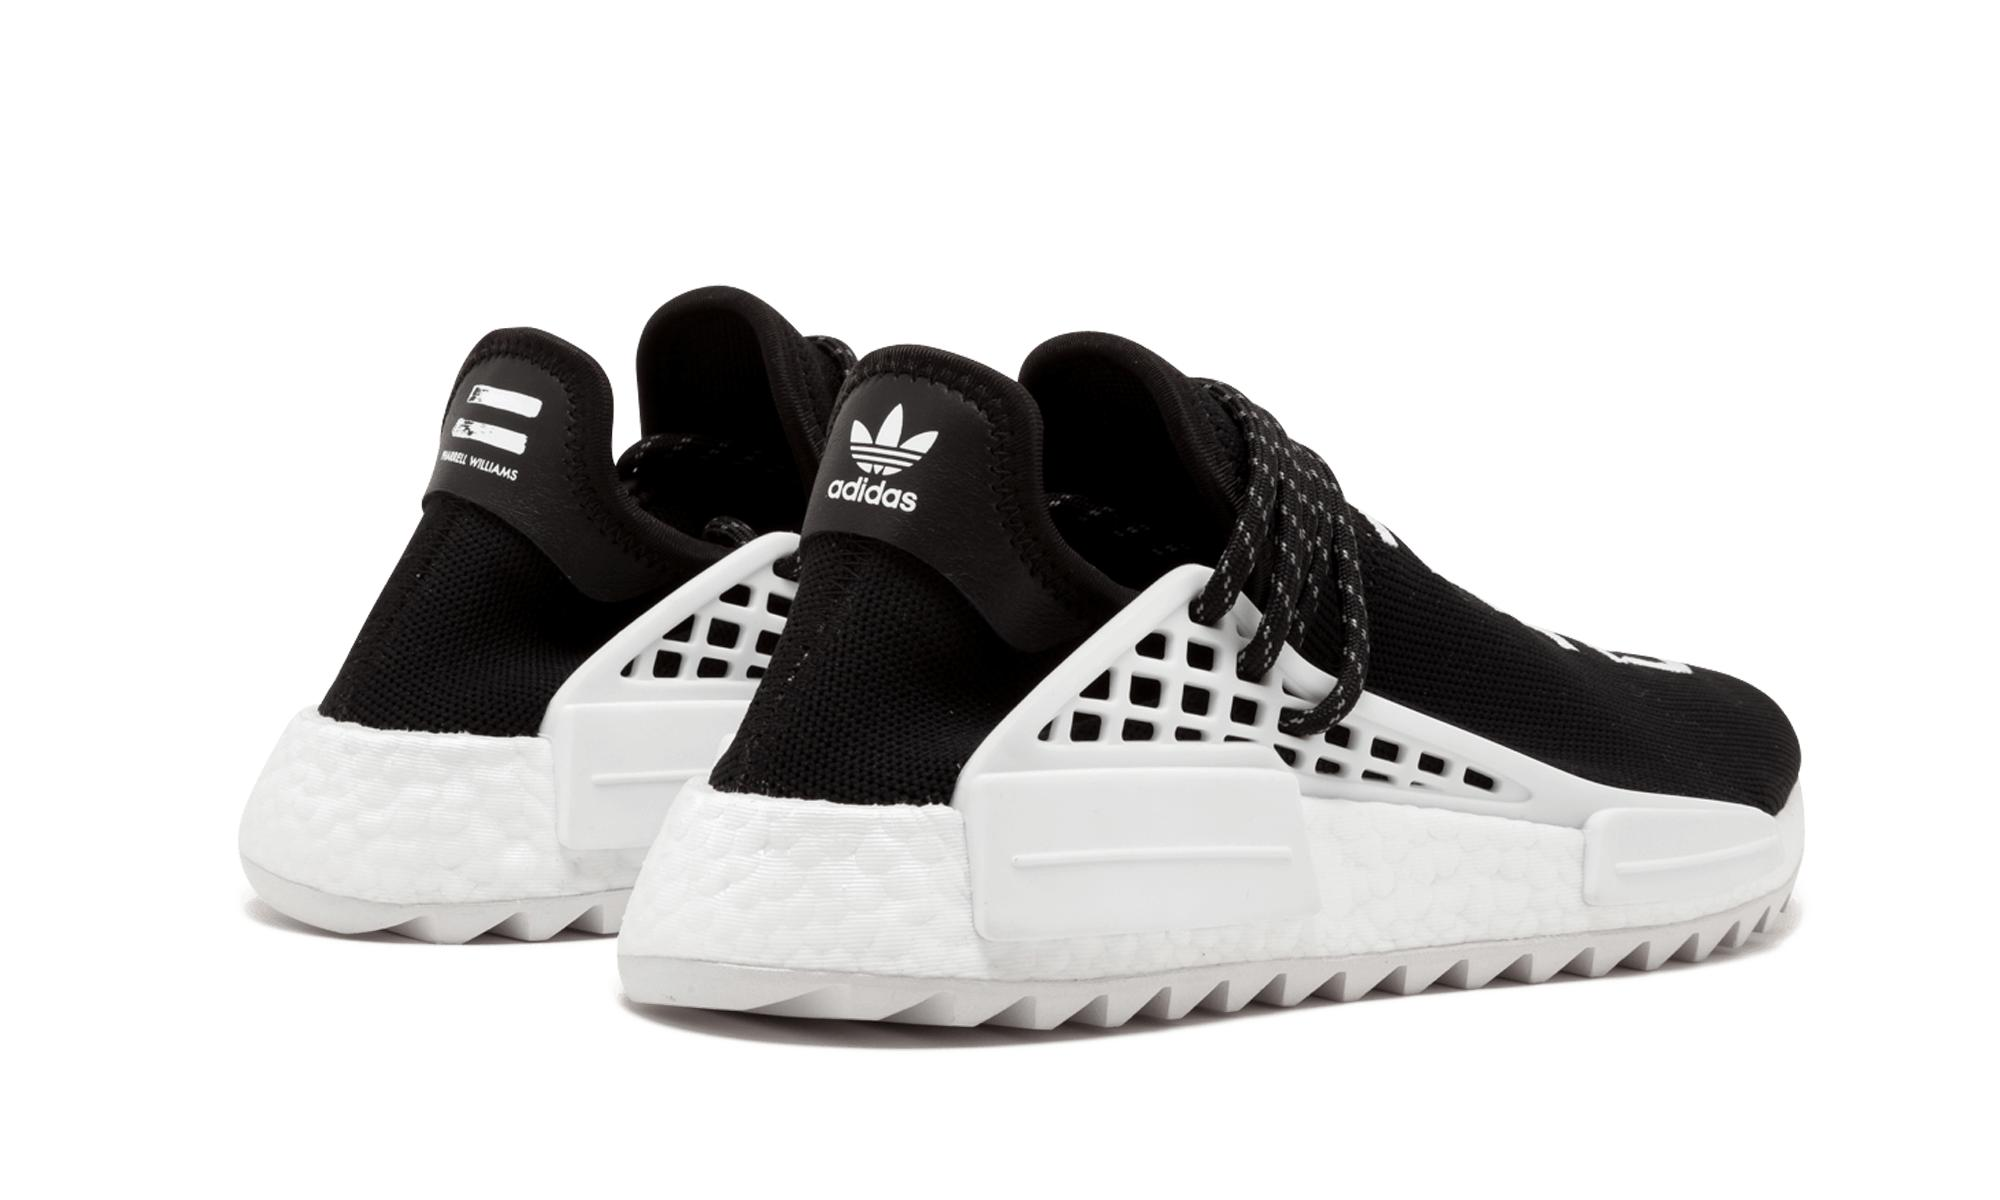 fa0f18edfc53 Lyst - adidas Pw X Cc Hu Nmd in Black for Men - Save 39%